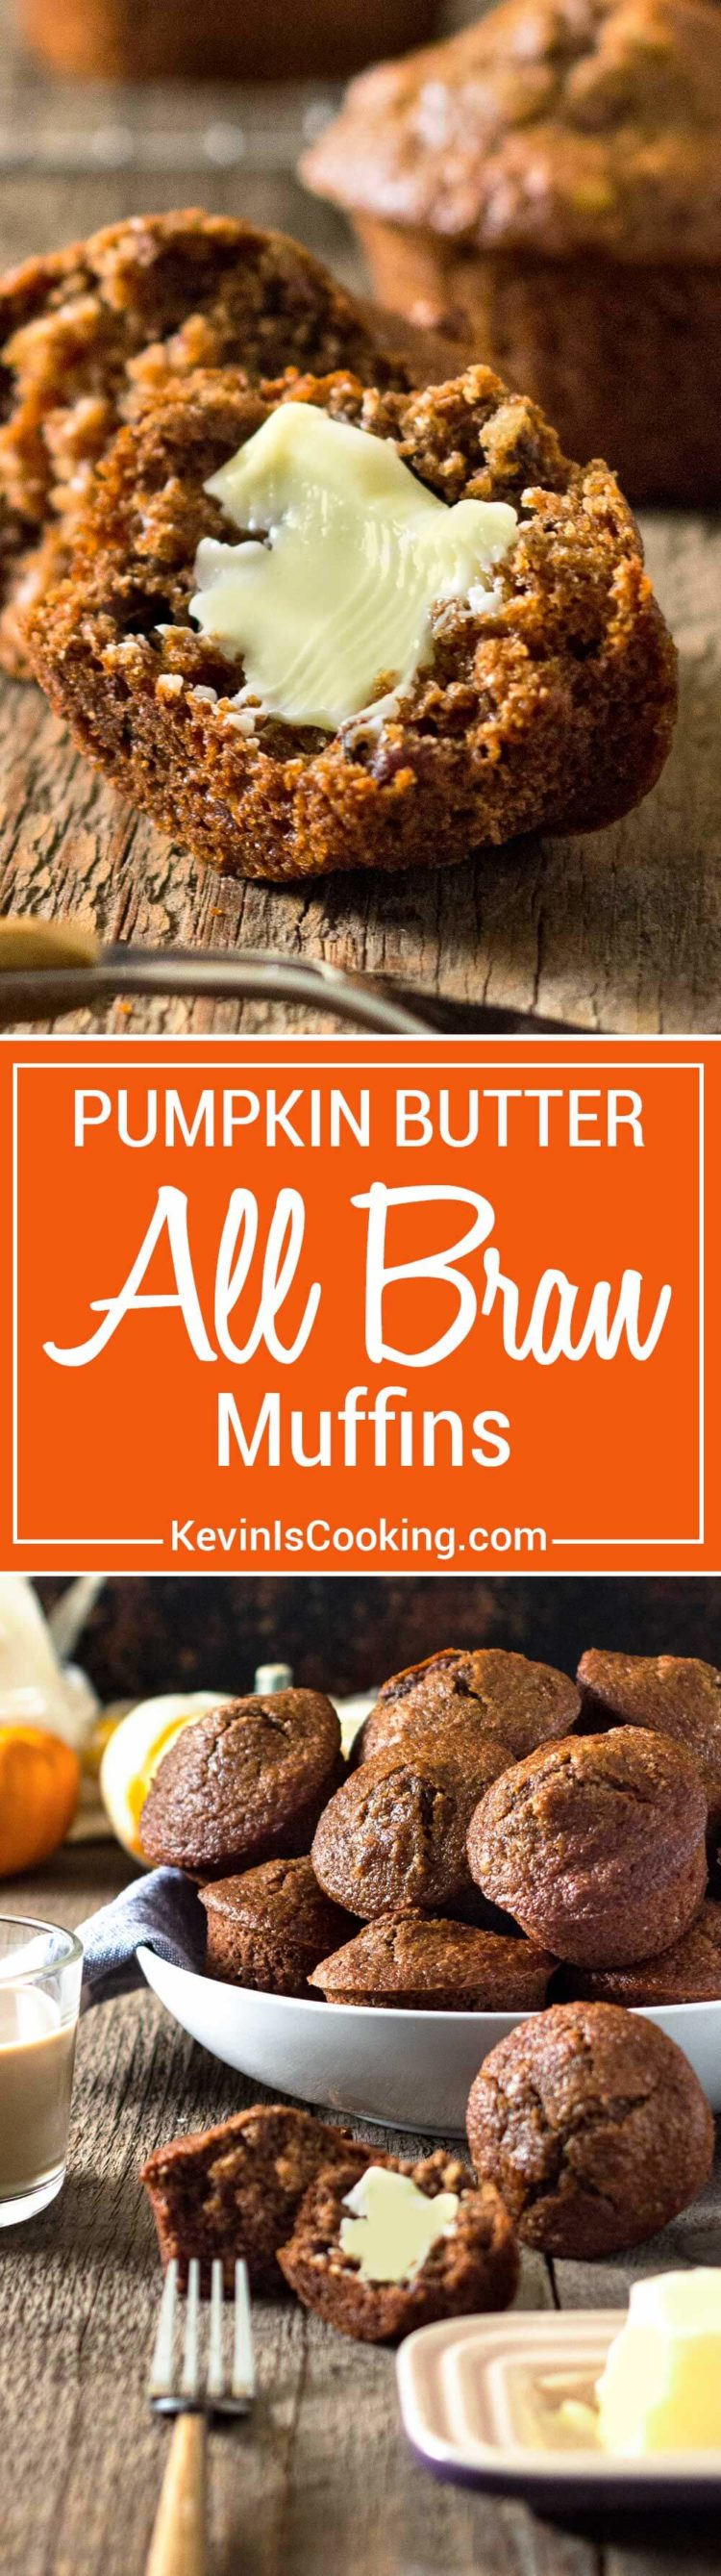 Super moist and loaded with pumpkin flavor and spices, these Pumpkin Butter All Bran Muffins are great for breakfast with coffee and some fruit. Spread with a little butter to melt in and enjoy the holidays! Buttermilk and Pumpkin Butter are the secret!